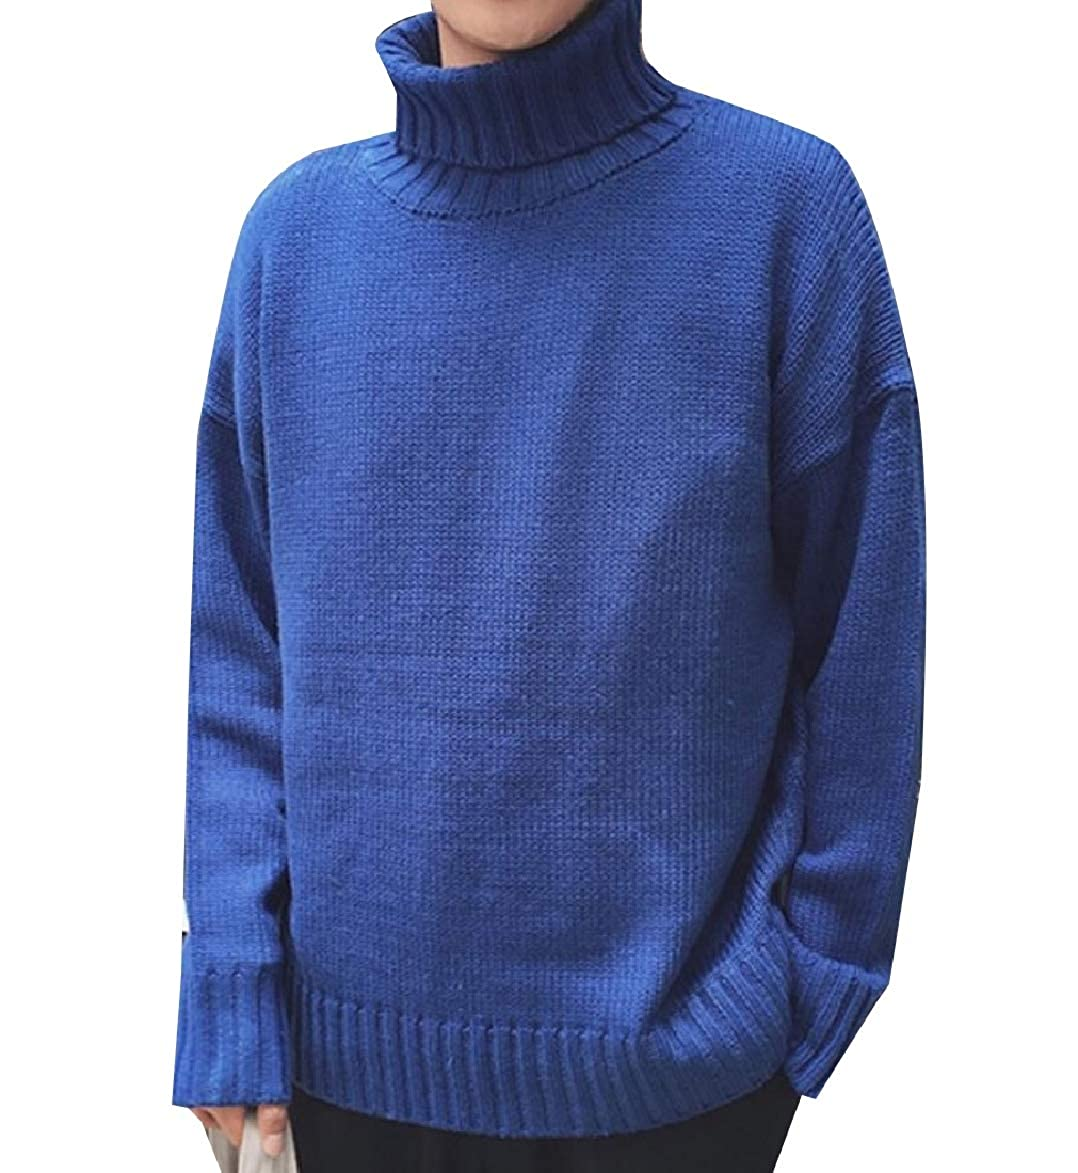 XiaoShop Mens Knitwear Mock Neck Warm Pure Colour Knit Pullover Sweater